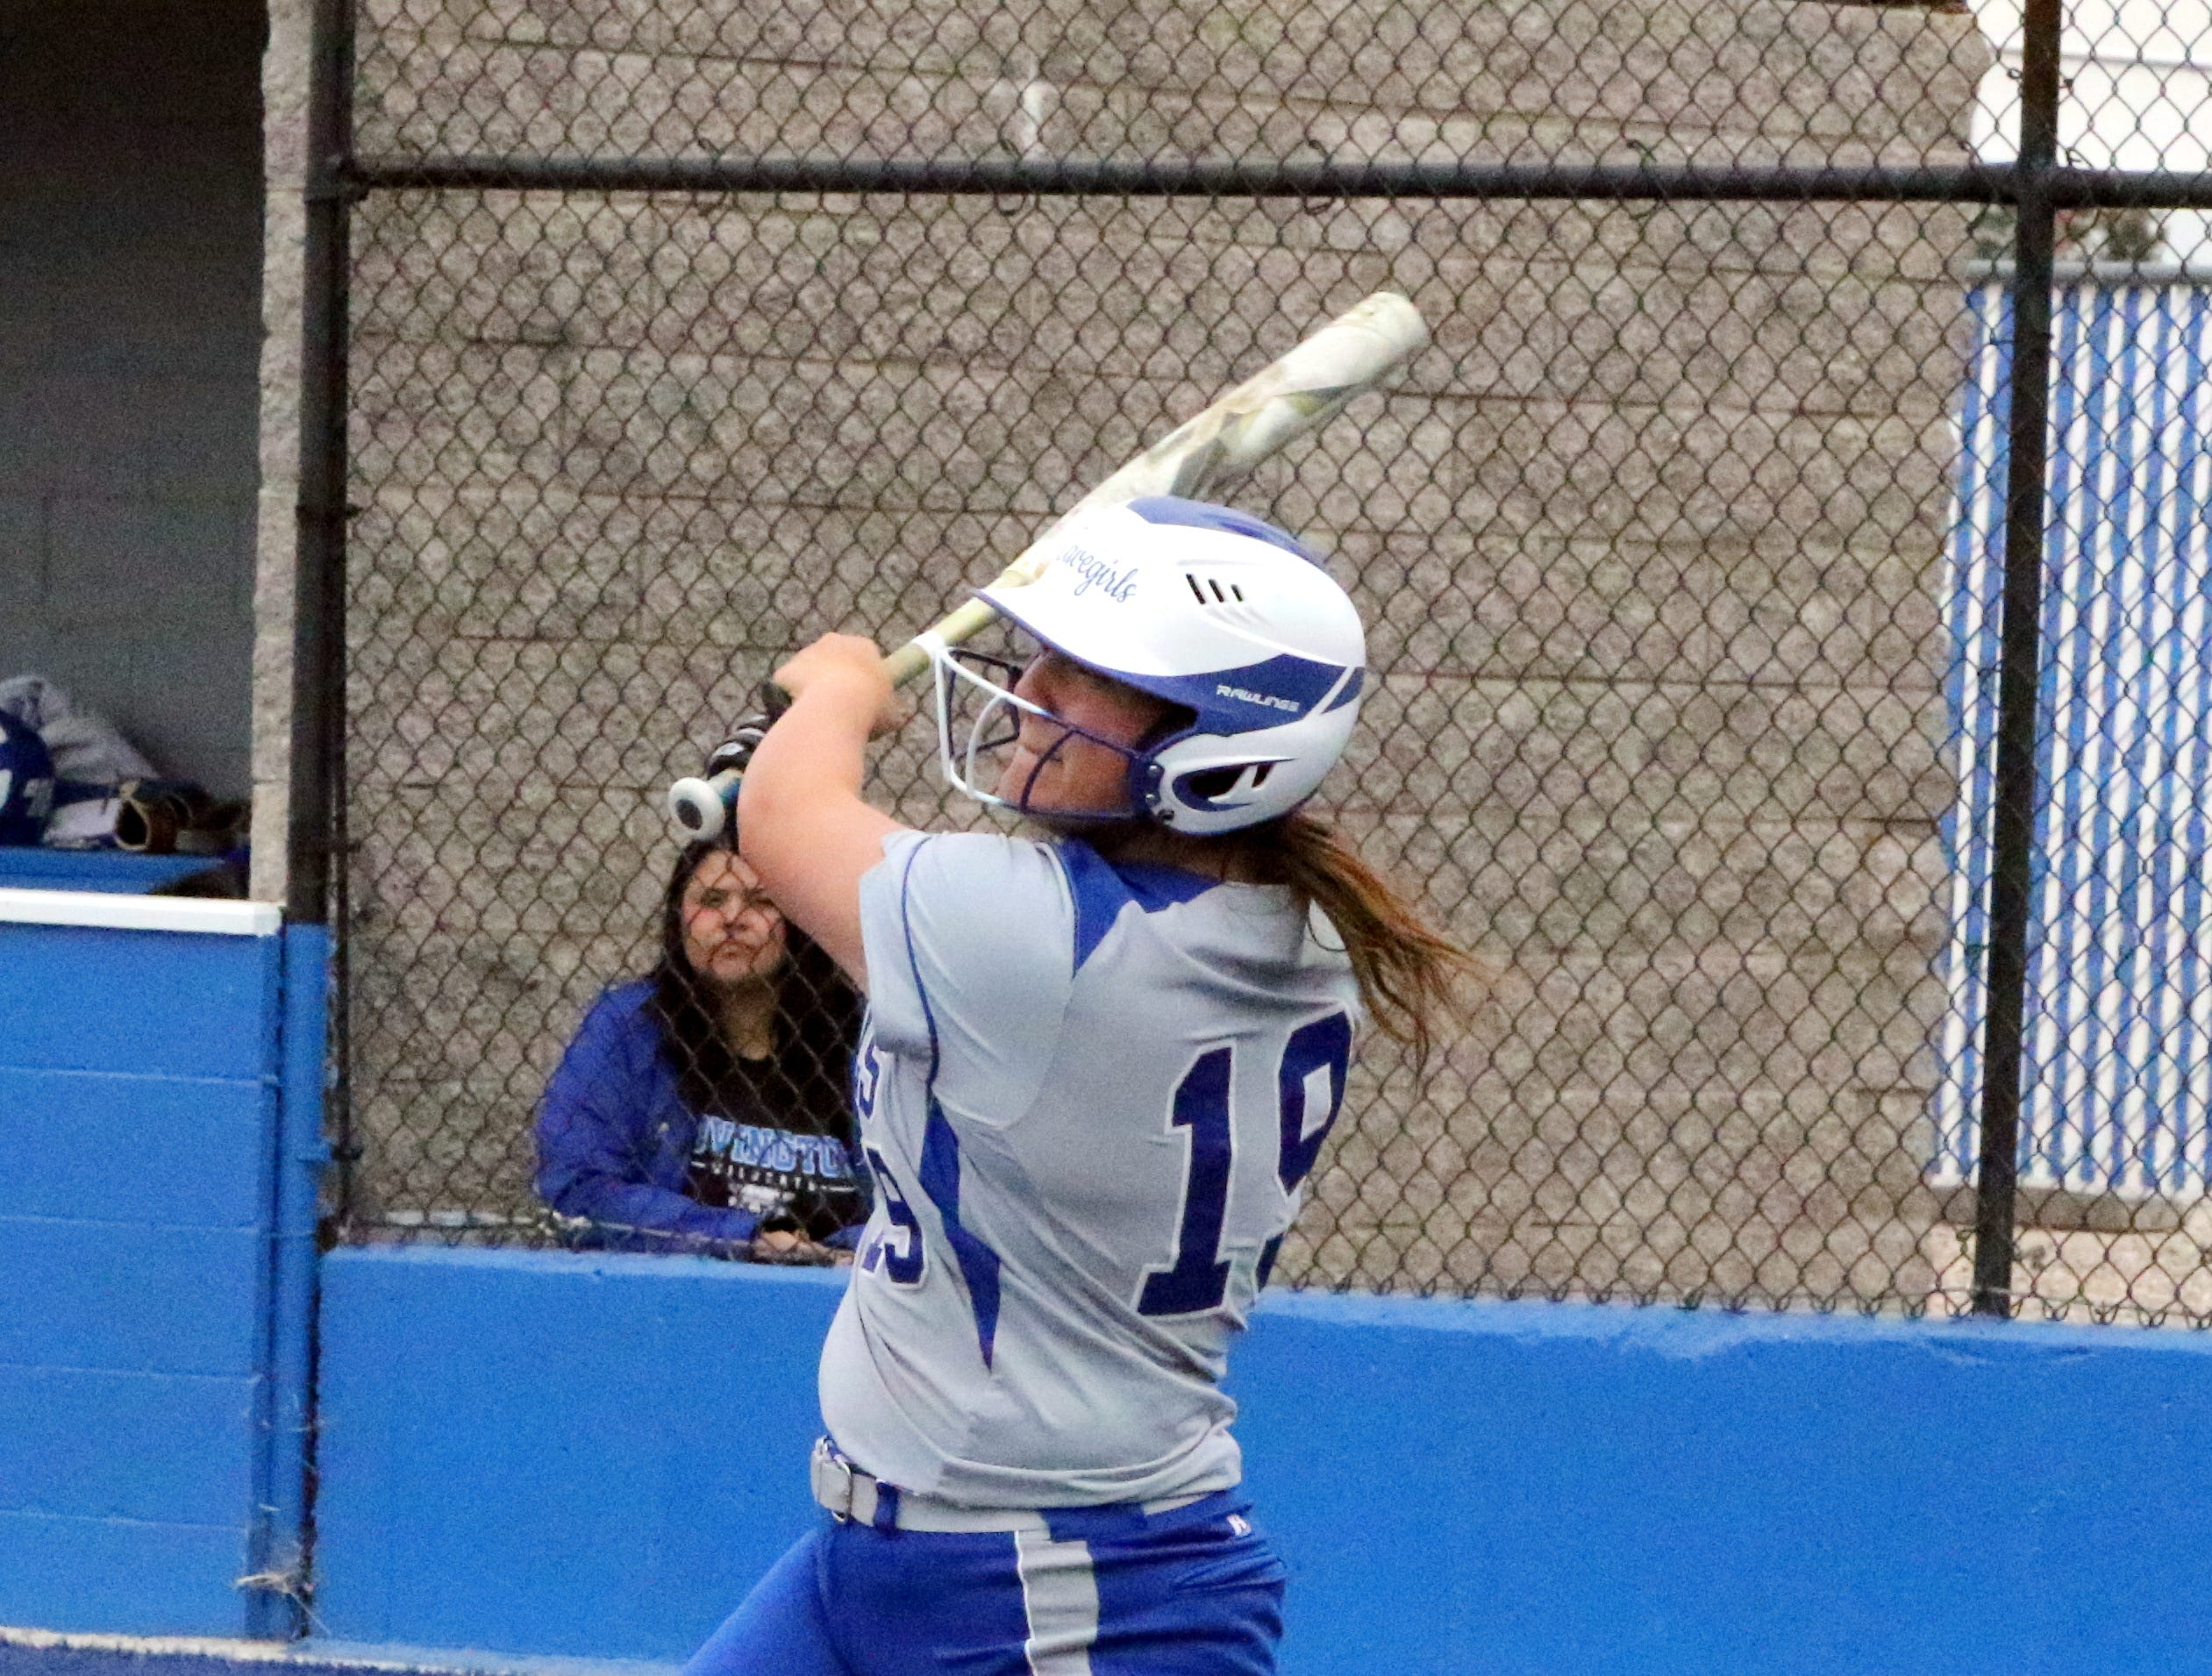 Taighen Whitzel watches her sixth inning hit smack the outfield wall. Whitzel turned the hit into an RBI double.